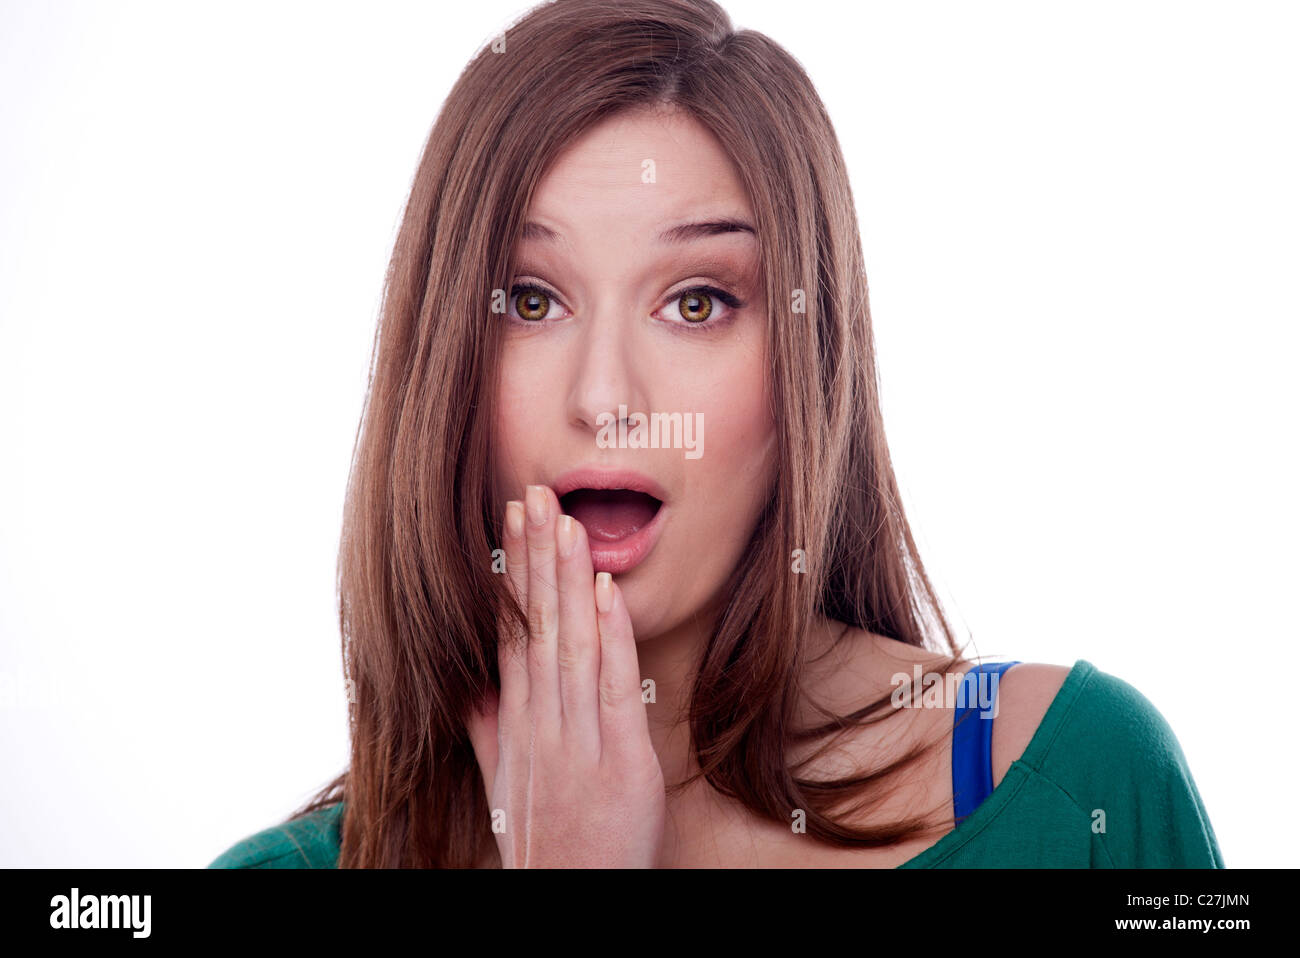 Brunette woman looking shocked by what she has seen or heard - Stock Image